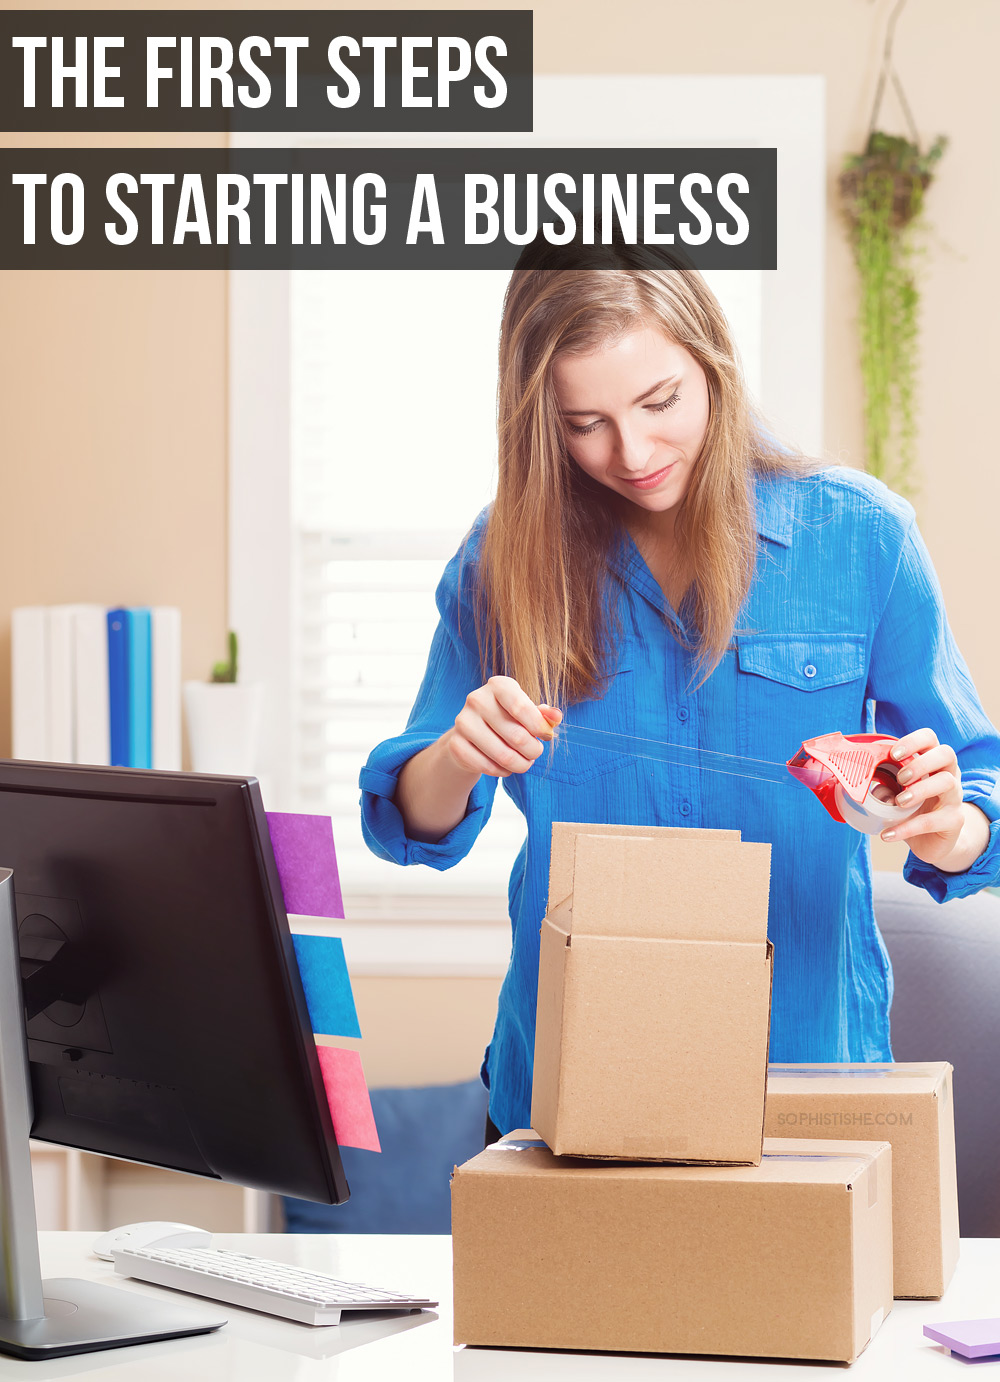 The First Steps to Starting a Business